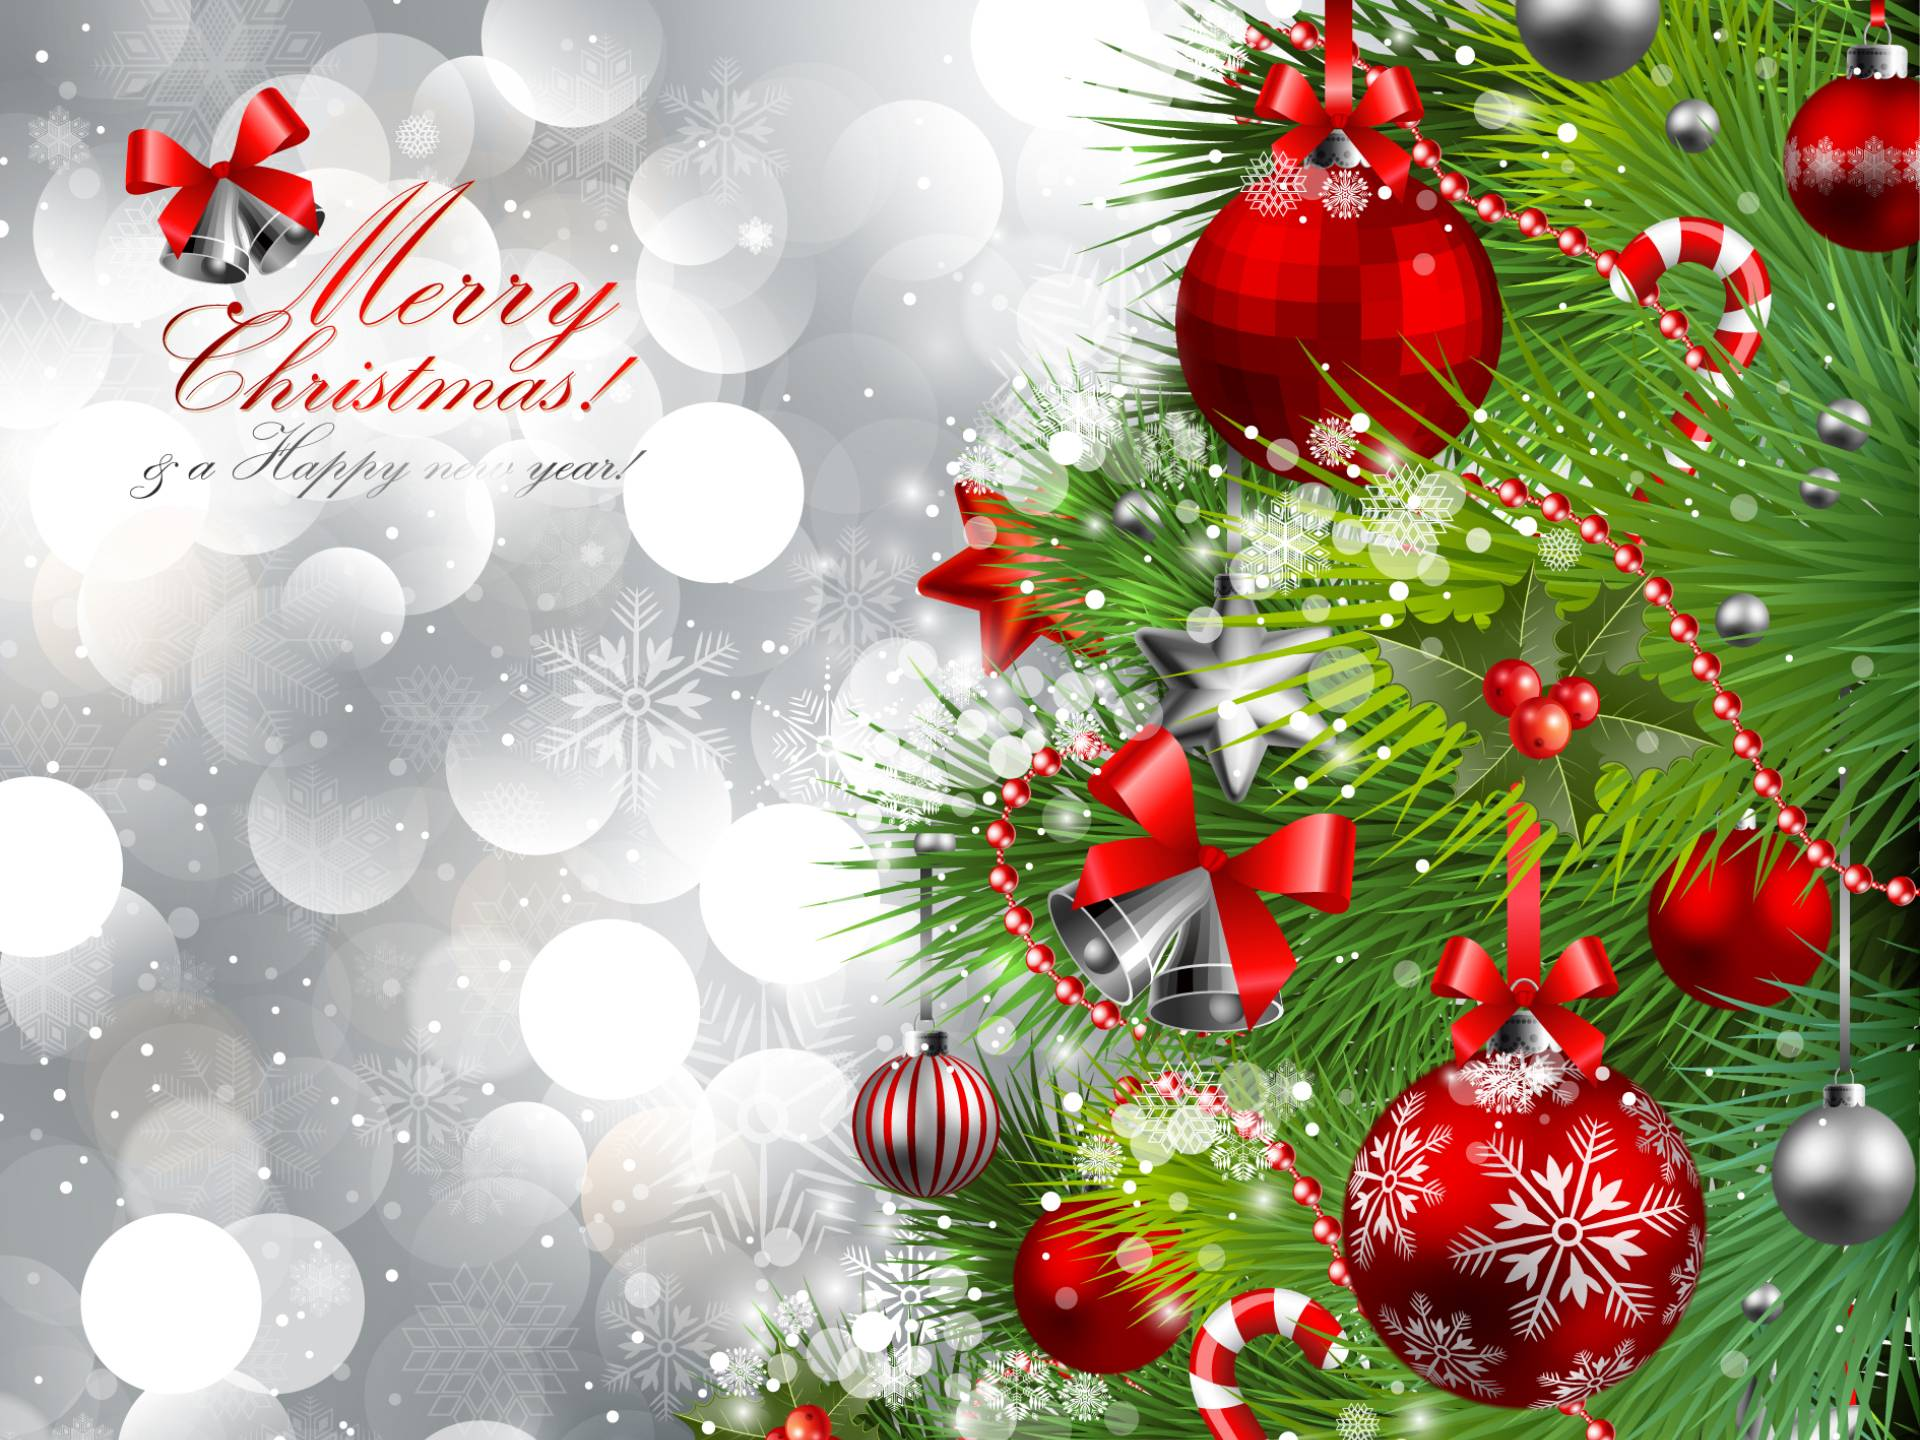 merry christmas backgrounds pictures - wallpaper cave